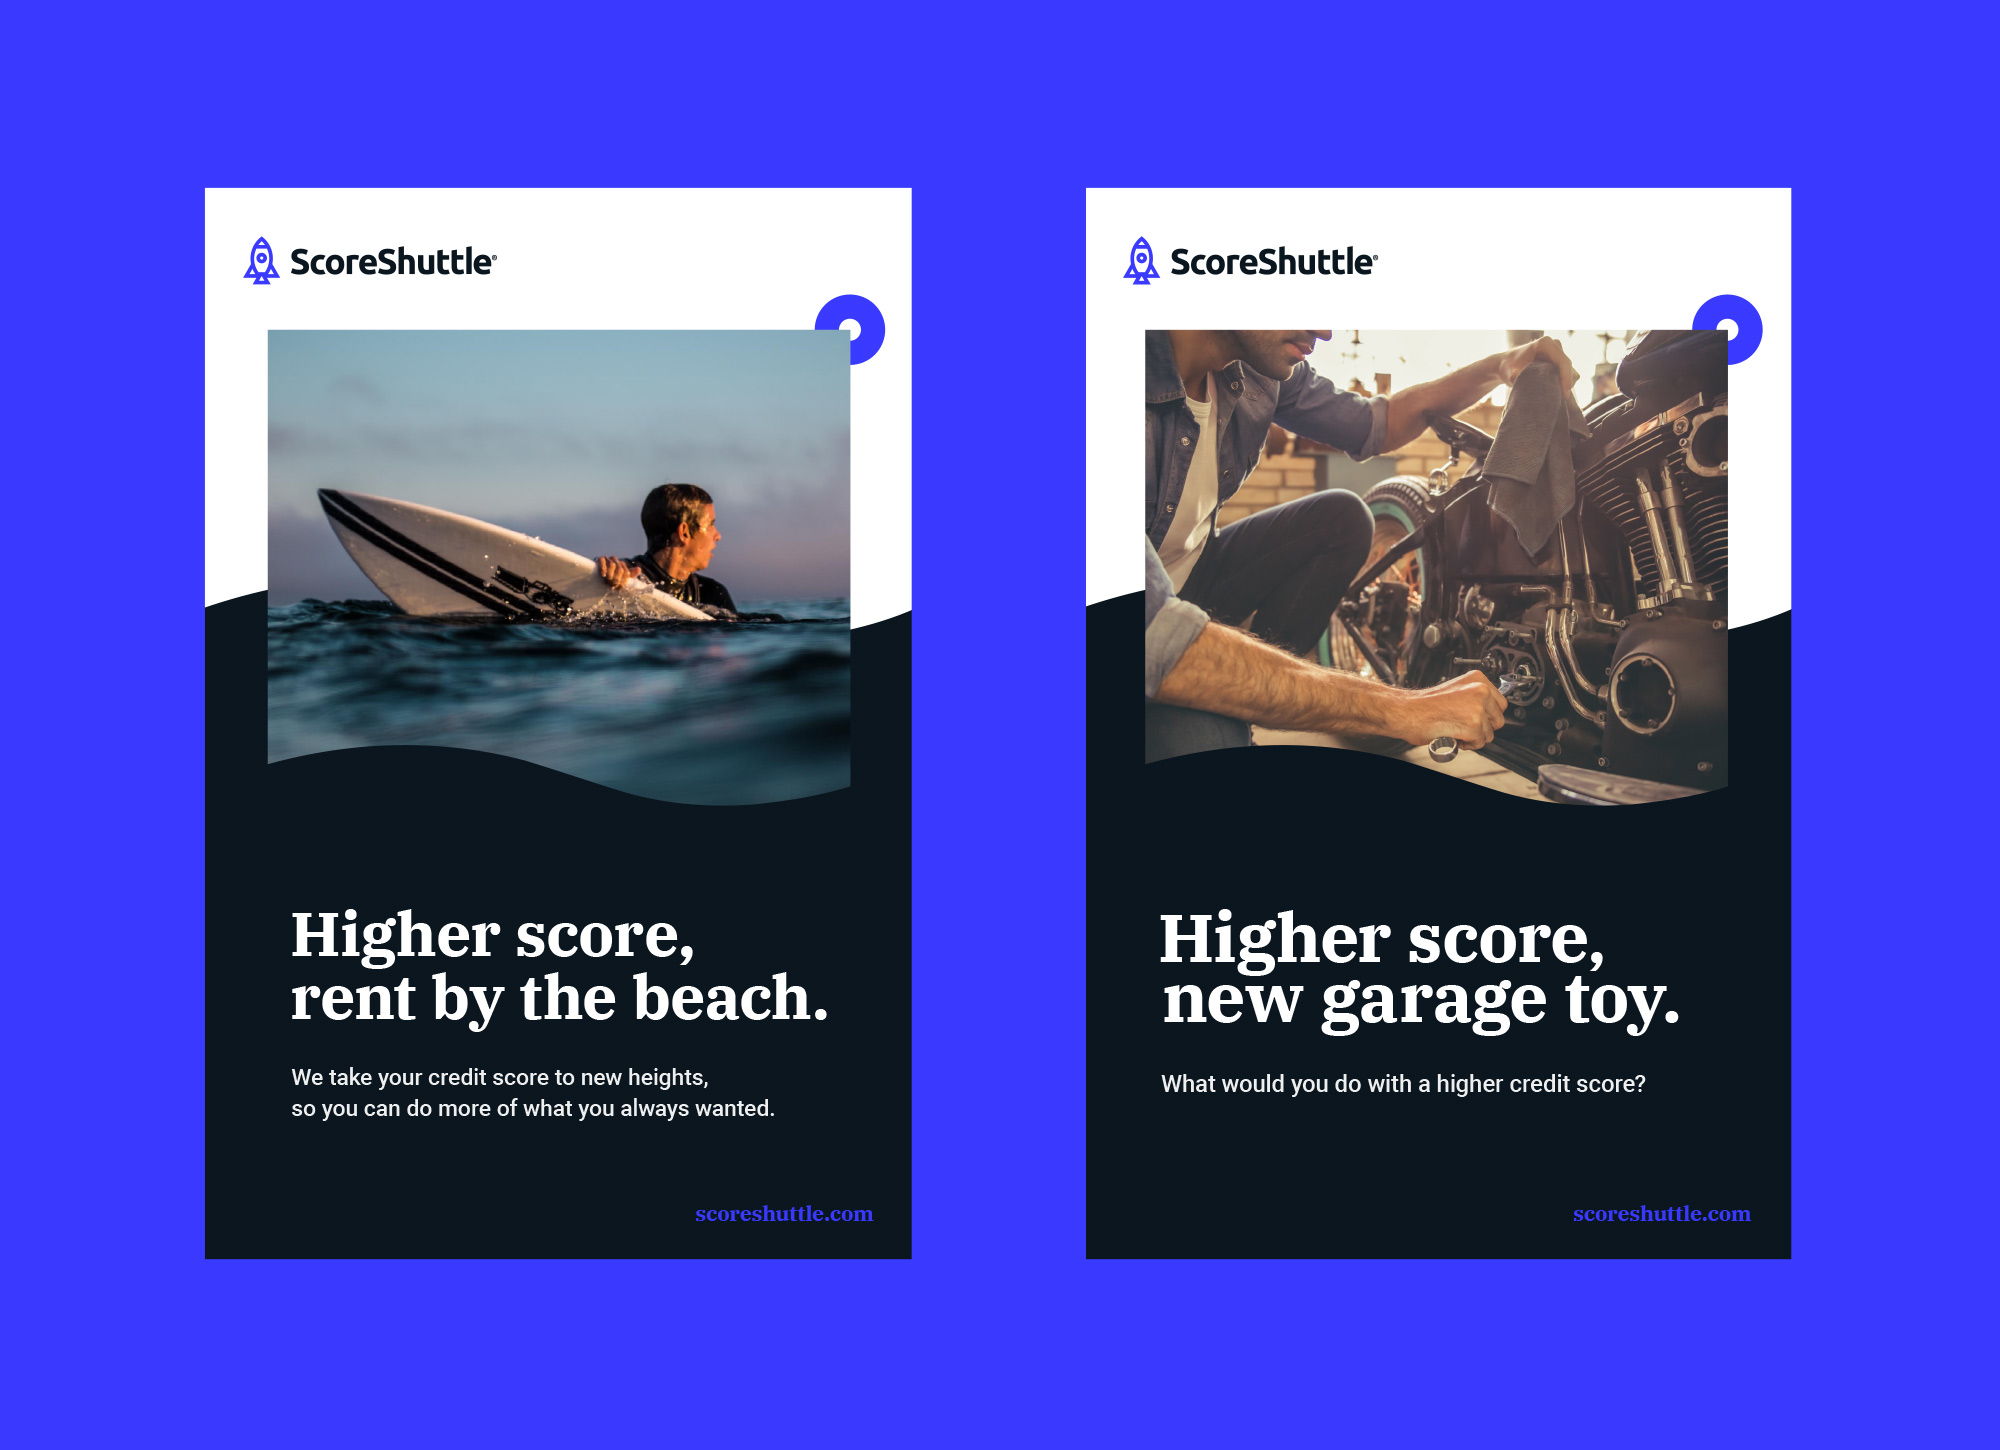 scoreshuttle-advertisement-02